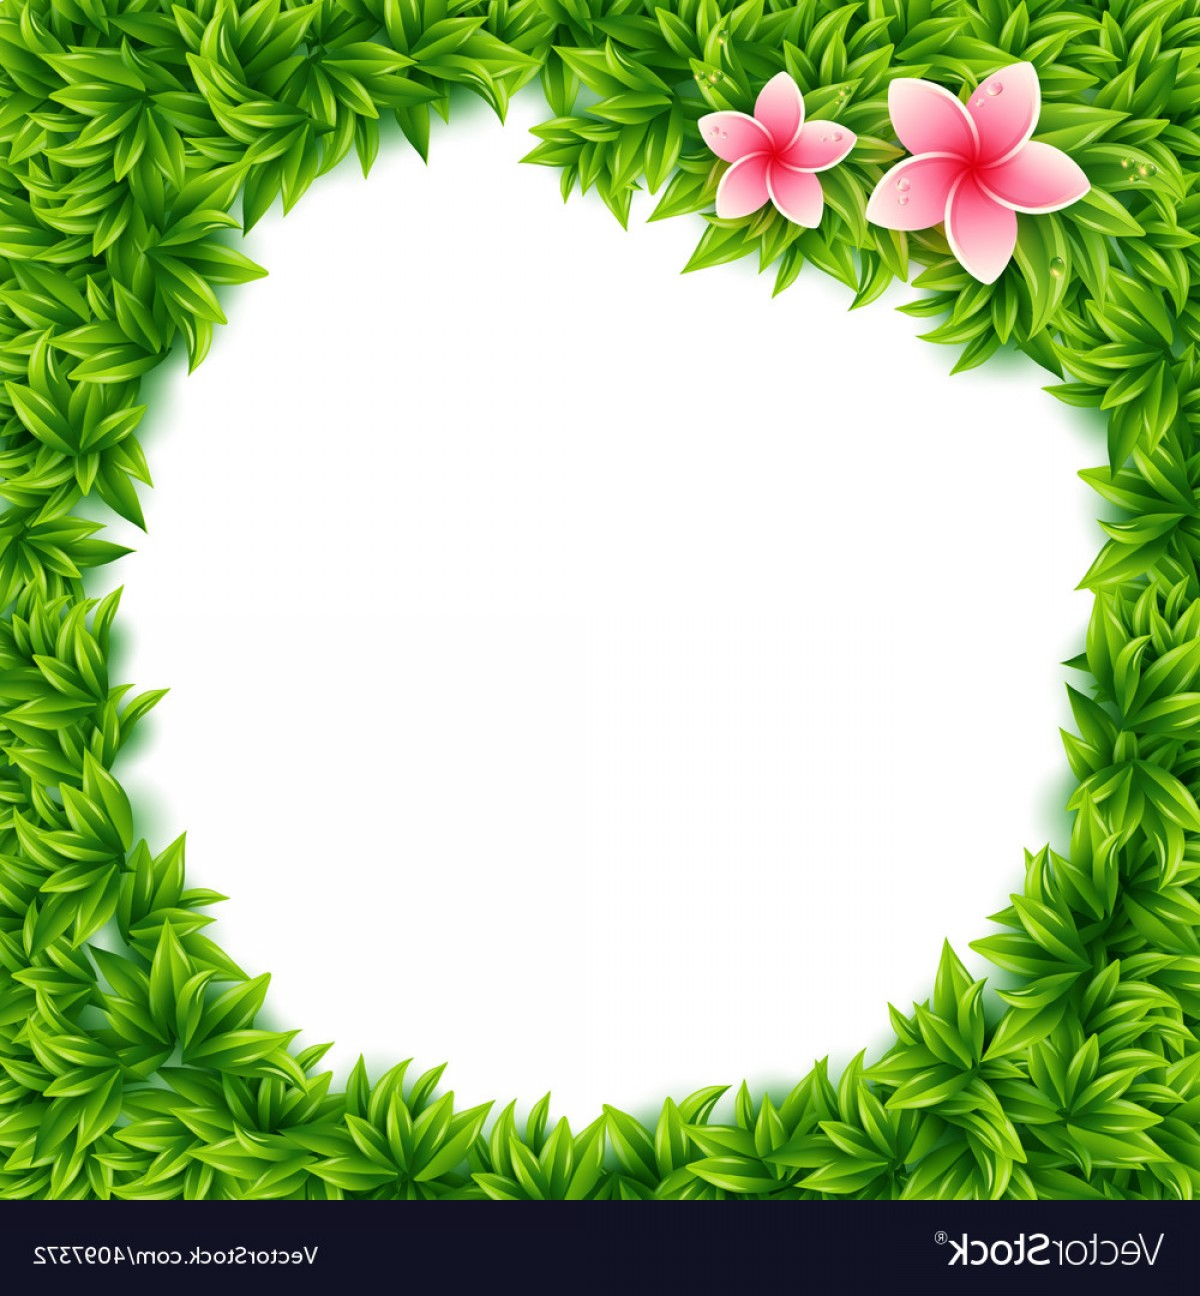 Green Flower Vector Designs: Fresh Green Leaves And Tropical Flowers Frame Vector